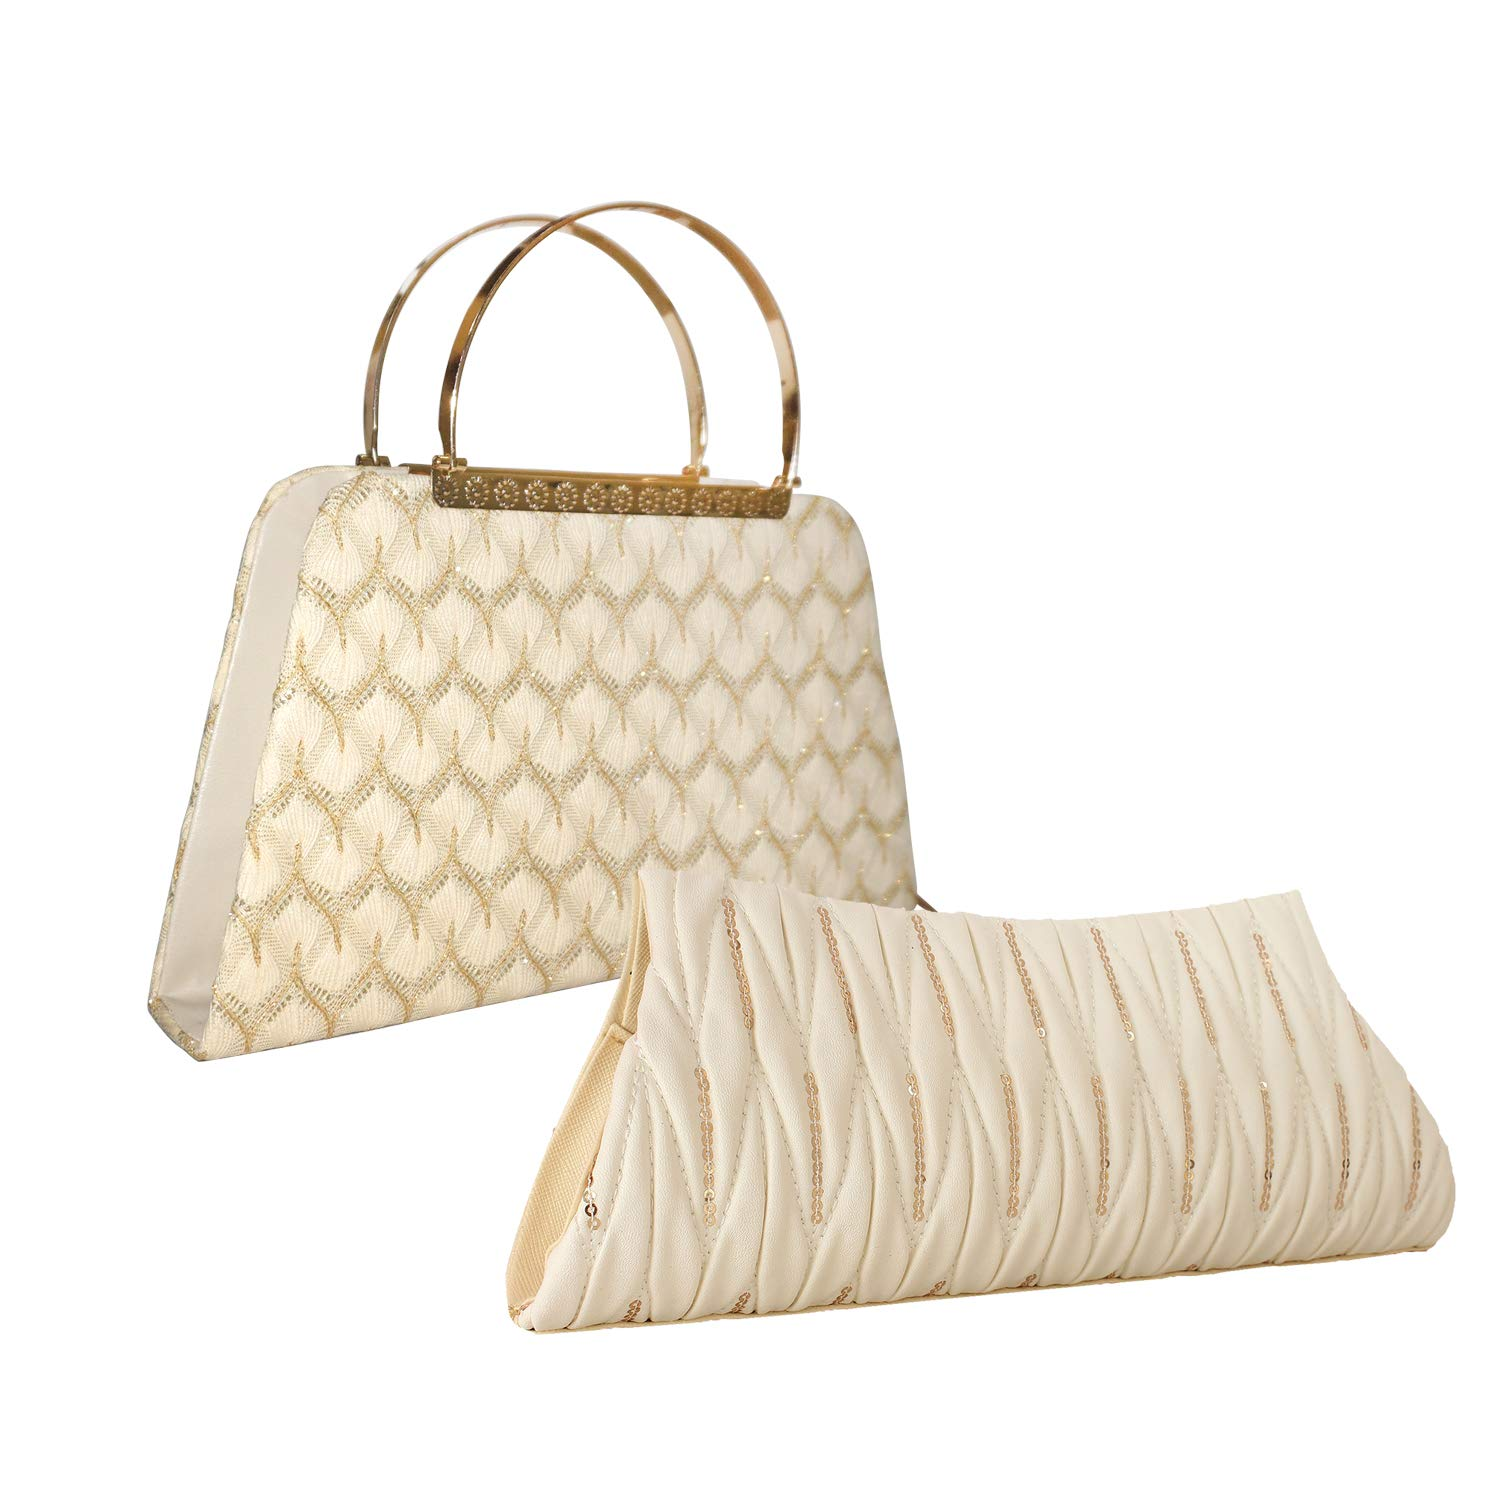 Element Cart Pu Material White Color Clutches for Women/Girls(CLUTCH-148_CLUTCH-ETC-039)